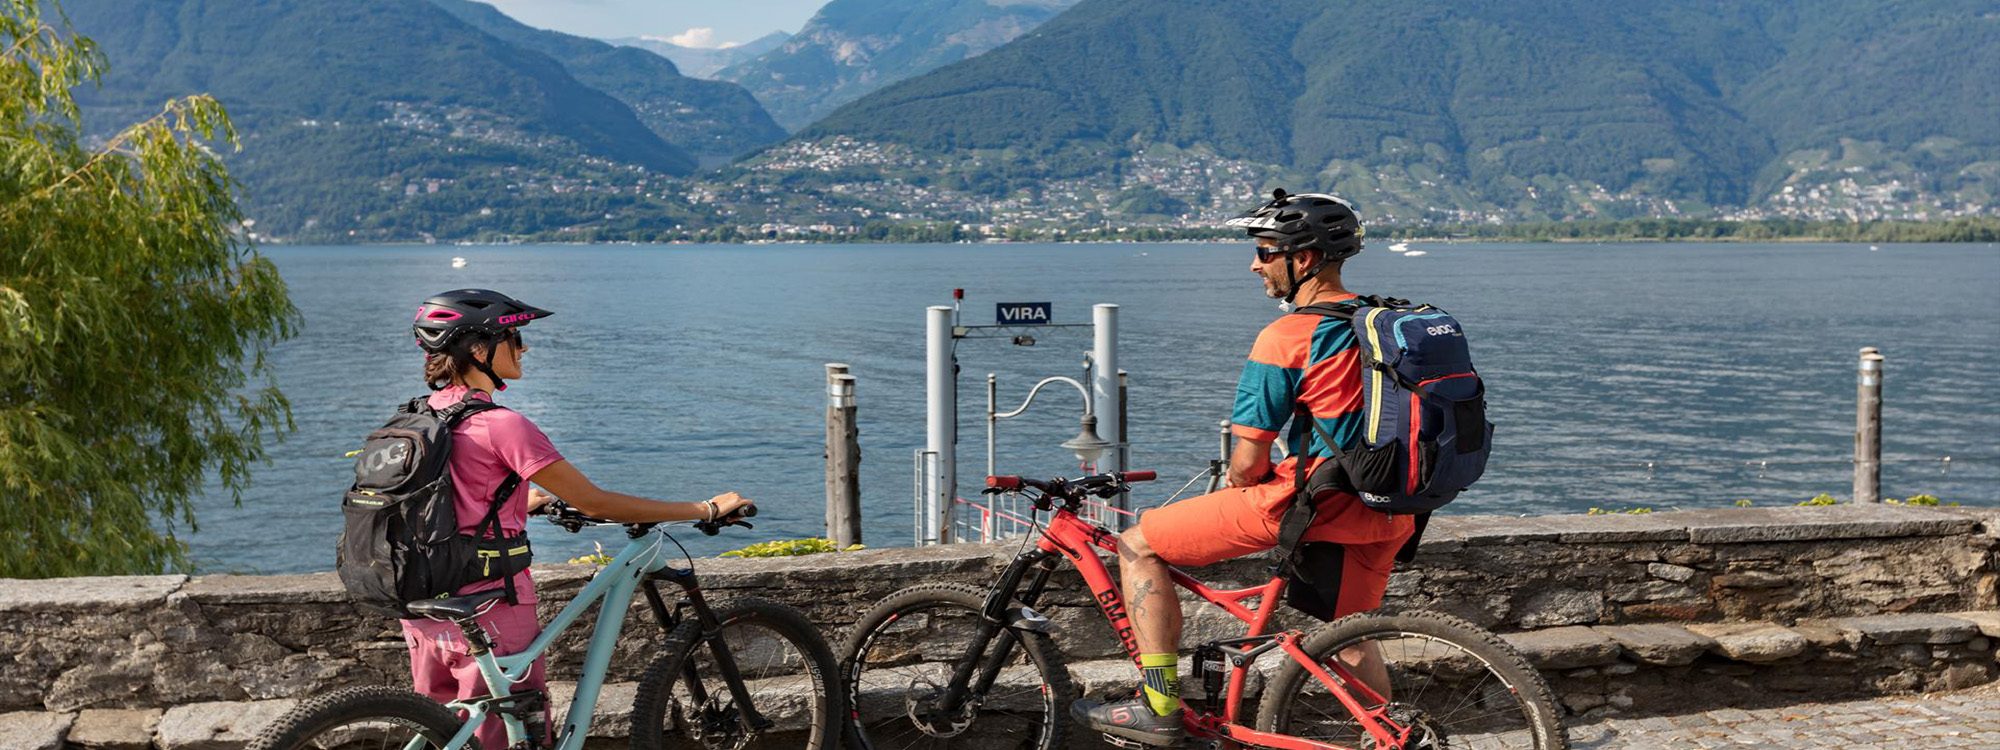 onlinebooking950x400-mtb-4